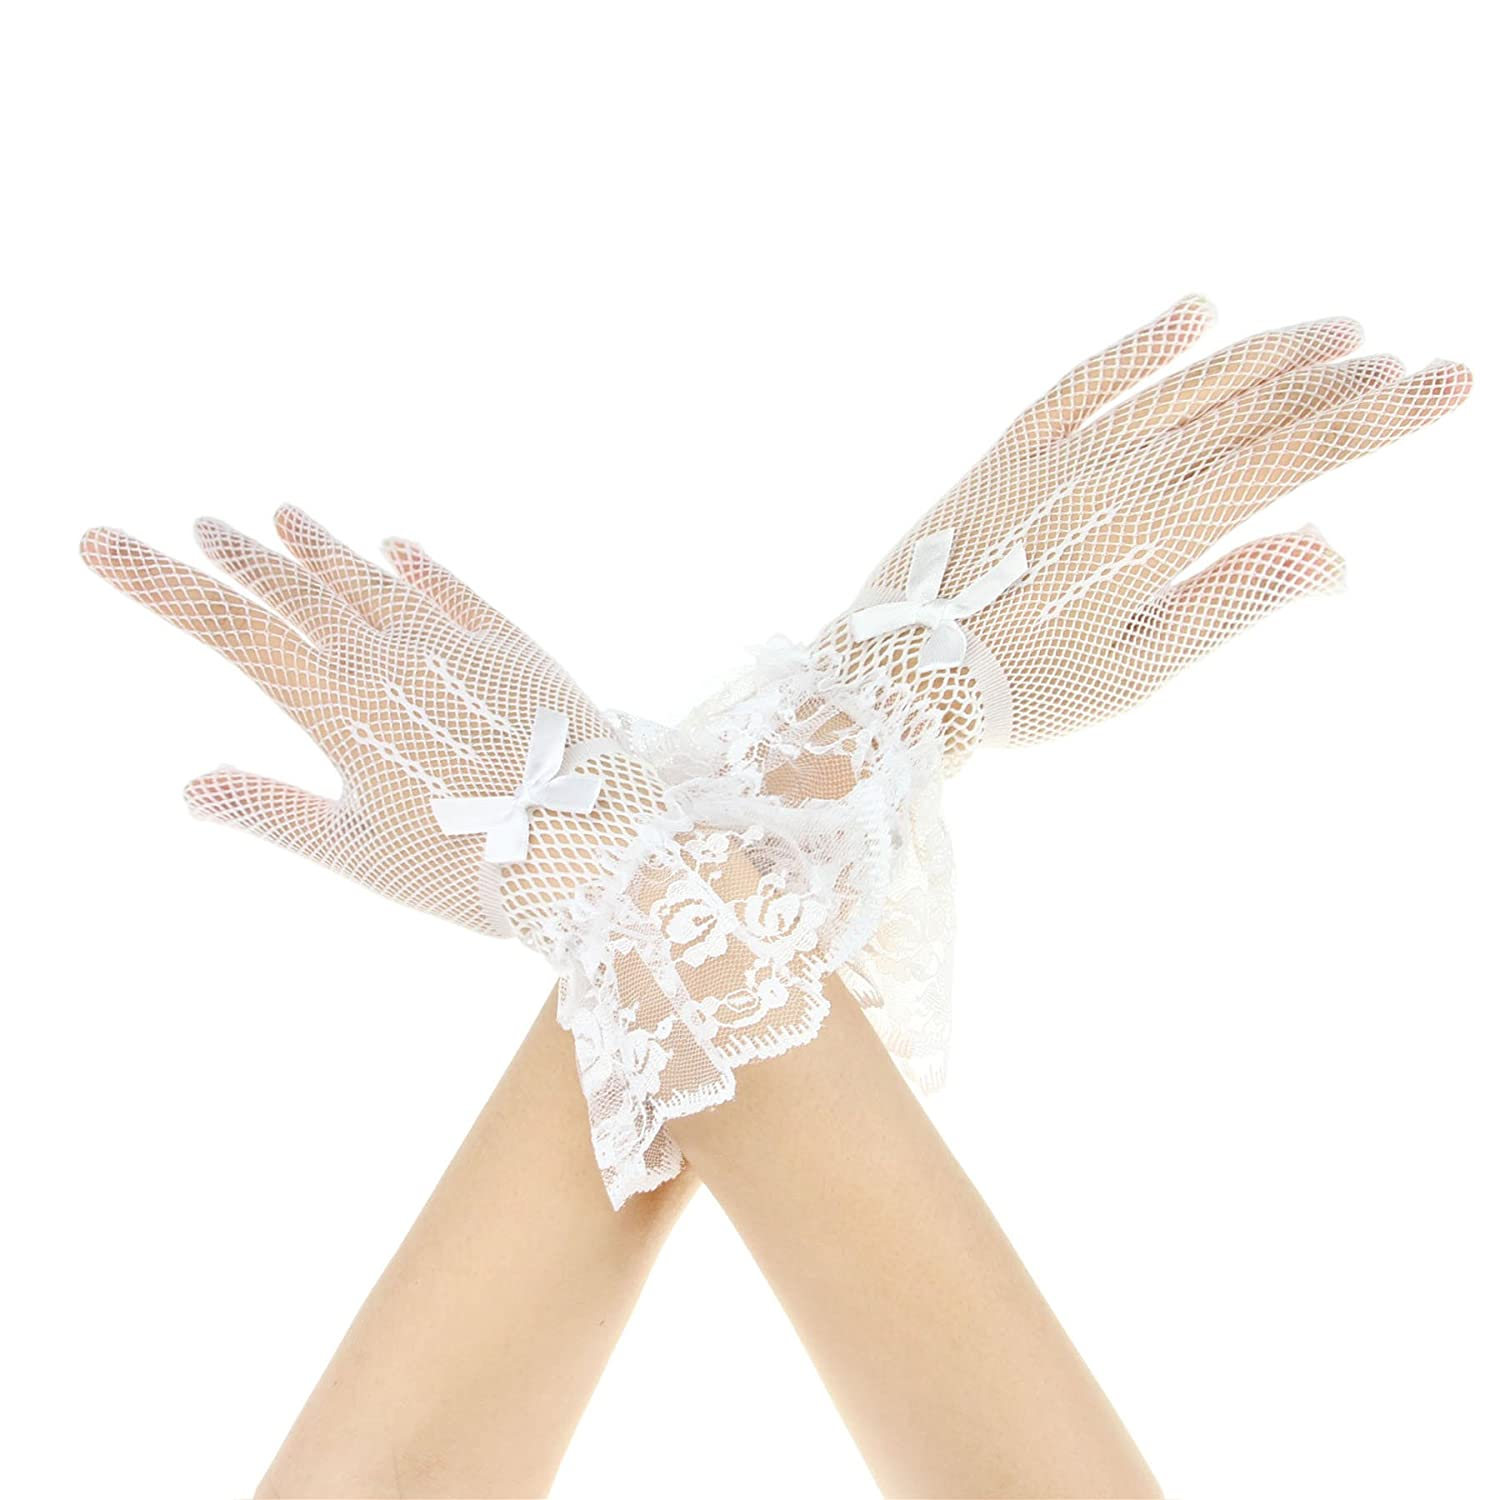 BXT Short Cotton Crochet Dress Gloves Wedding Gloves For Ladies Womens GLO-FHF-000038